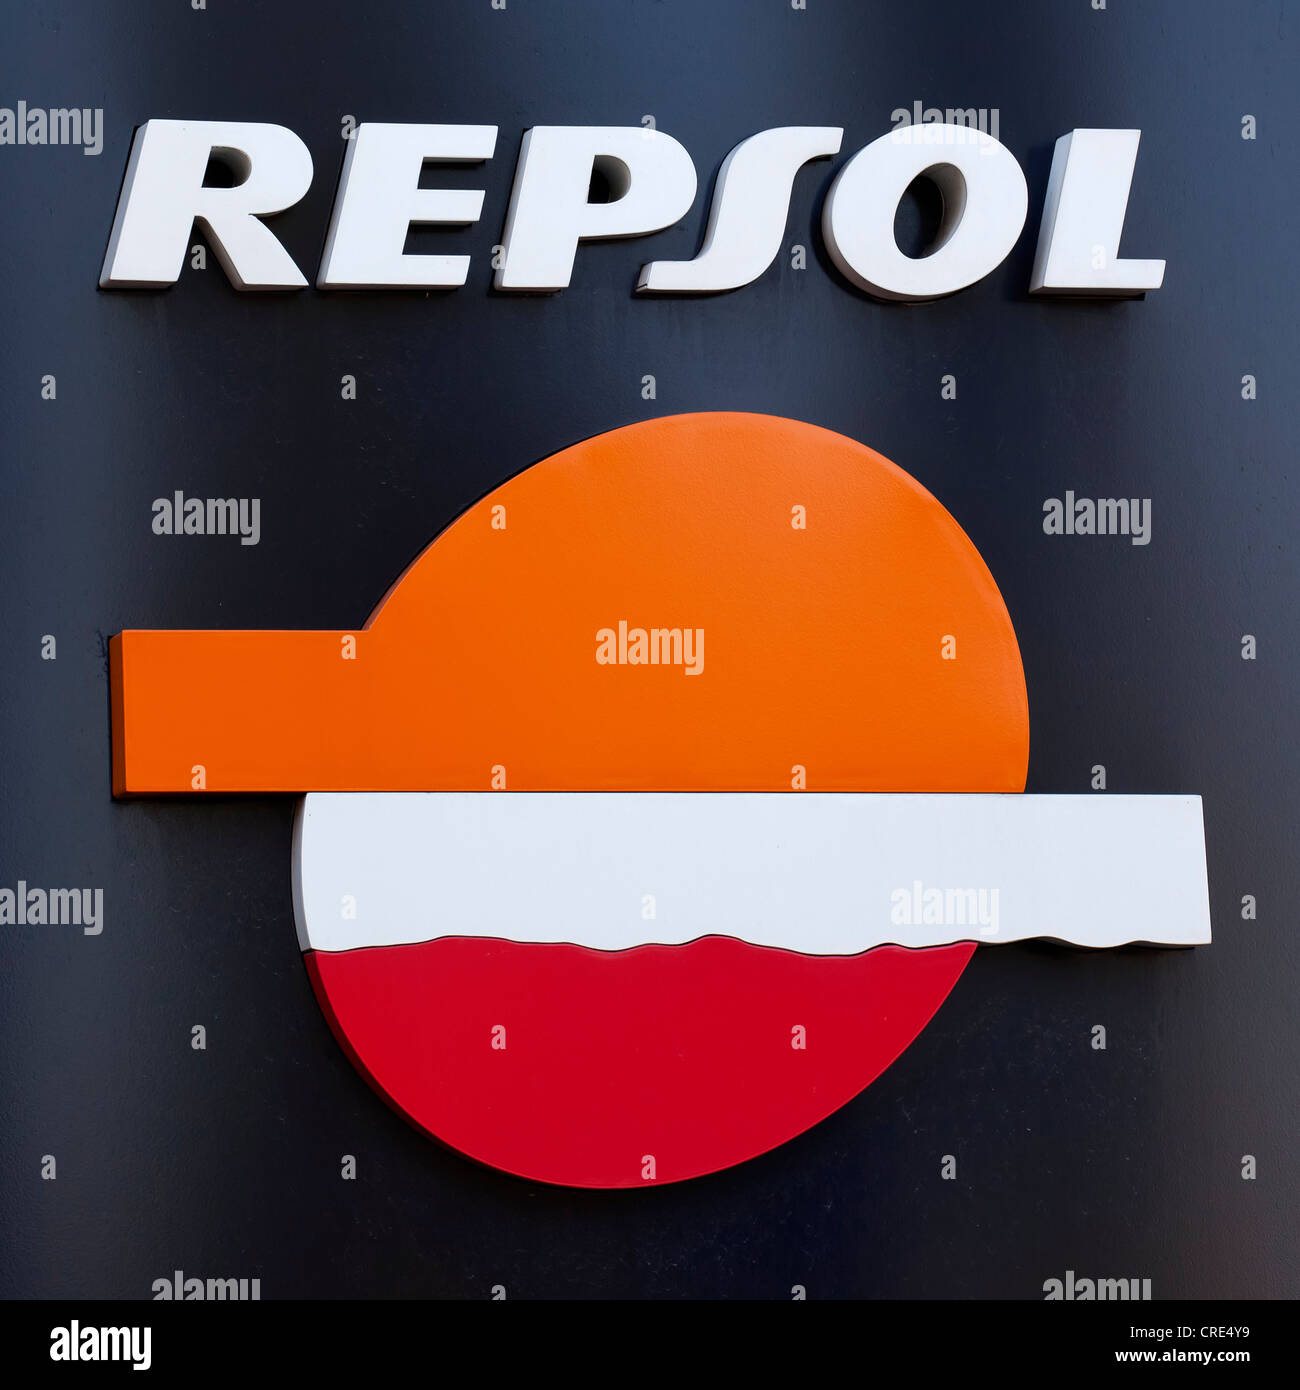 Logo and logotype of the Spanish oil company Repsol, Madrid, Spain, Europe - Stock Image